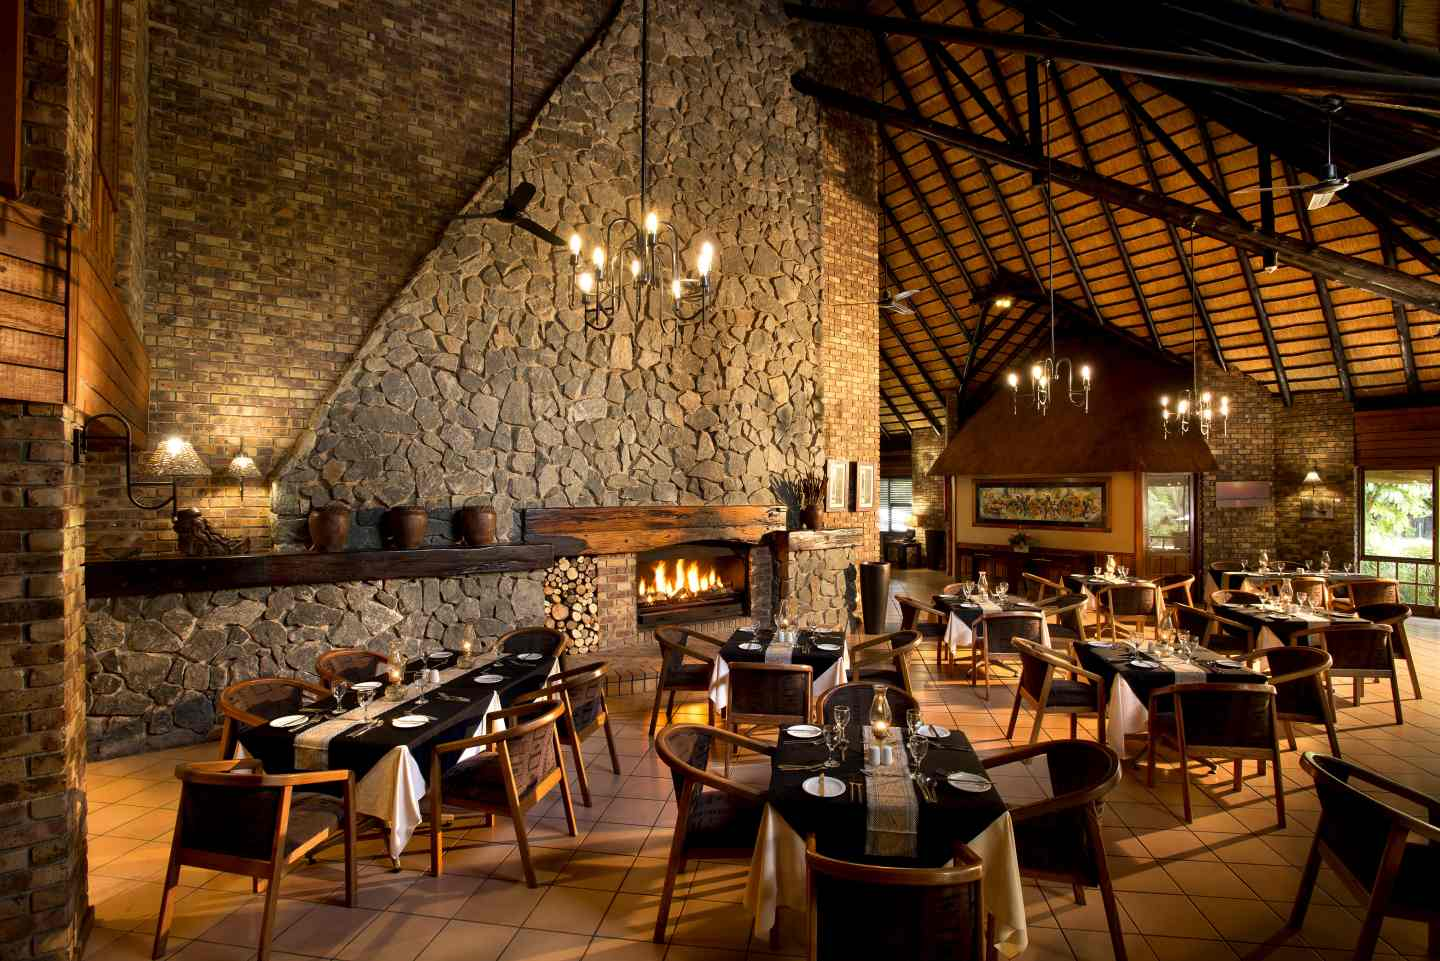 2018 Golf R >> Kruger Park Lodge (Hazyview), Hazyview, South Africa